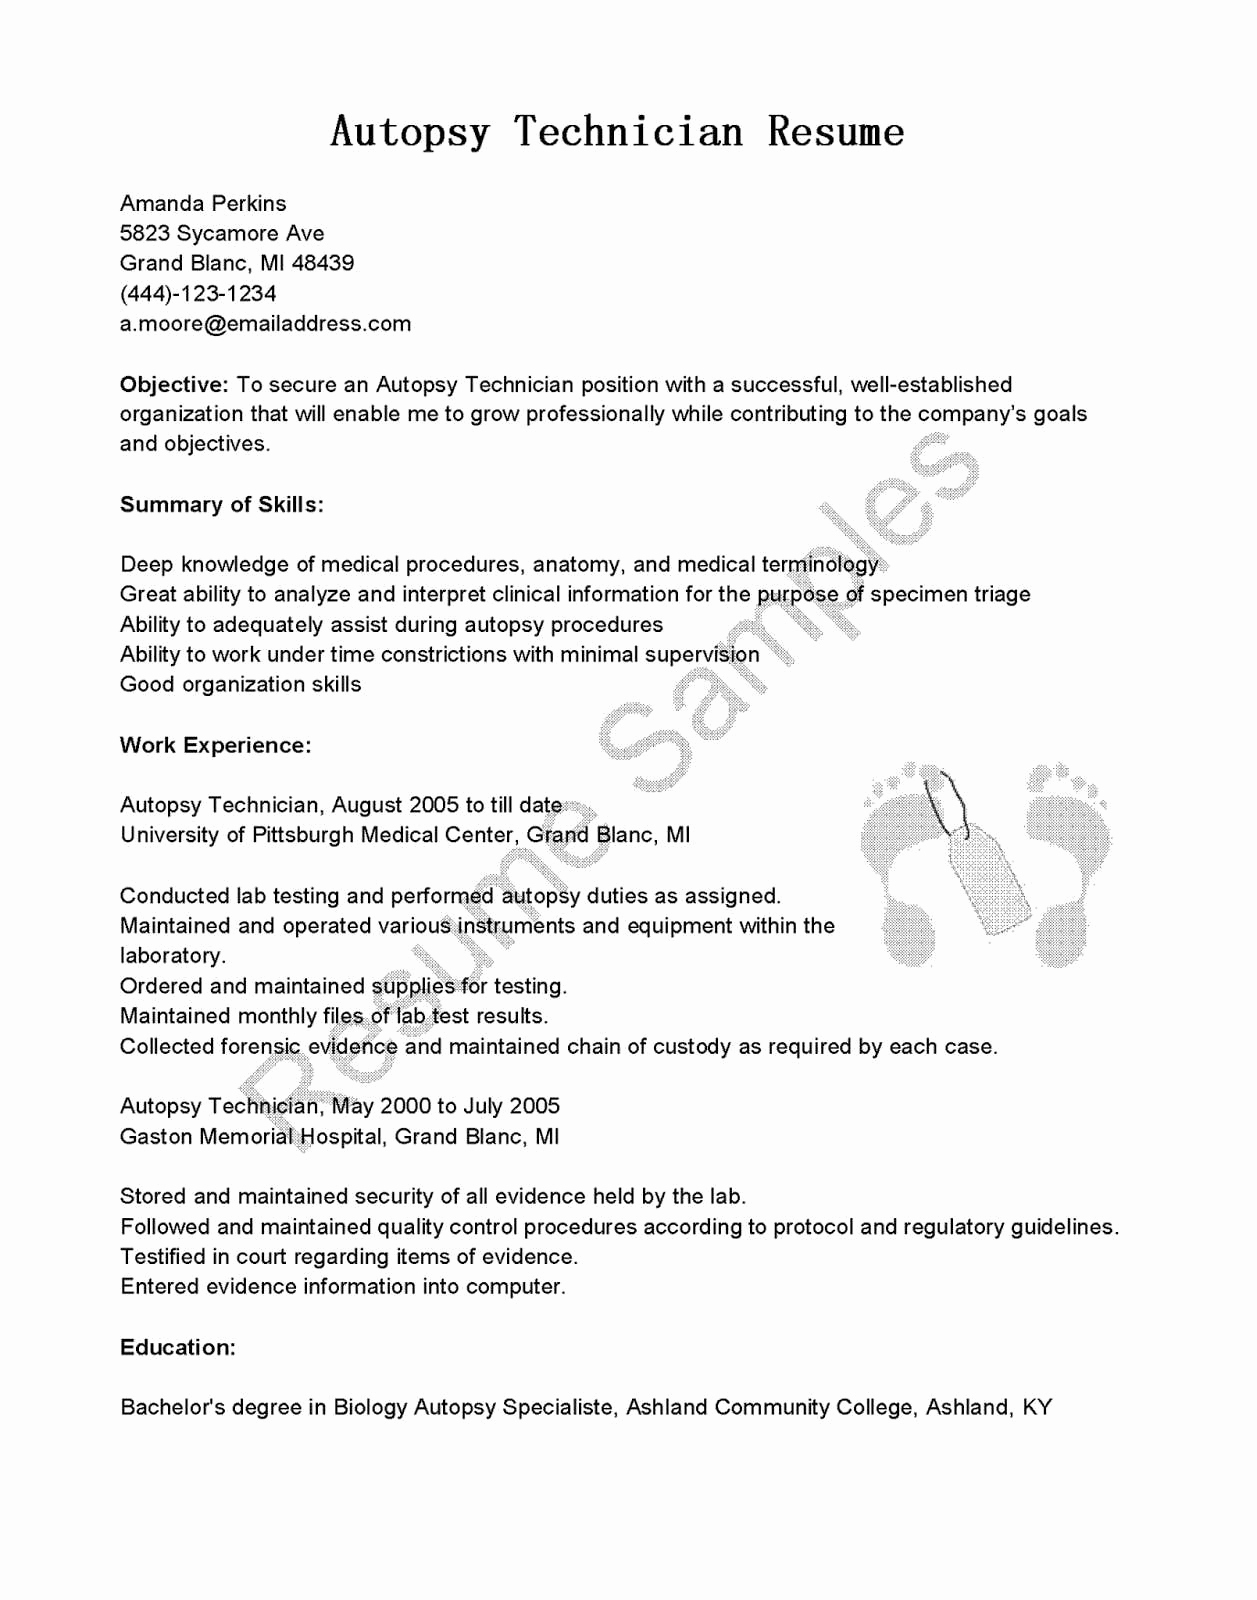 Security Cover Letter Template - Sampe Cover Letter Lovely Sample Cover Letter Template Lovely Od